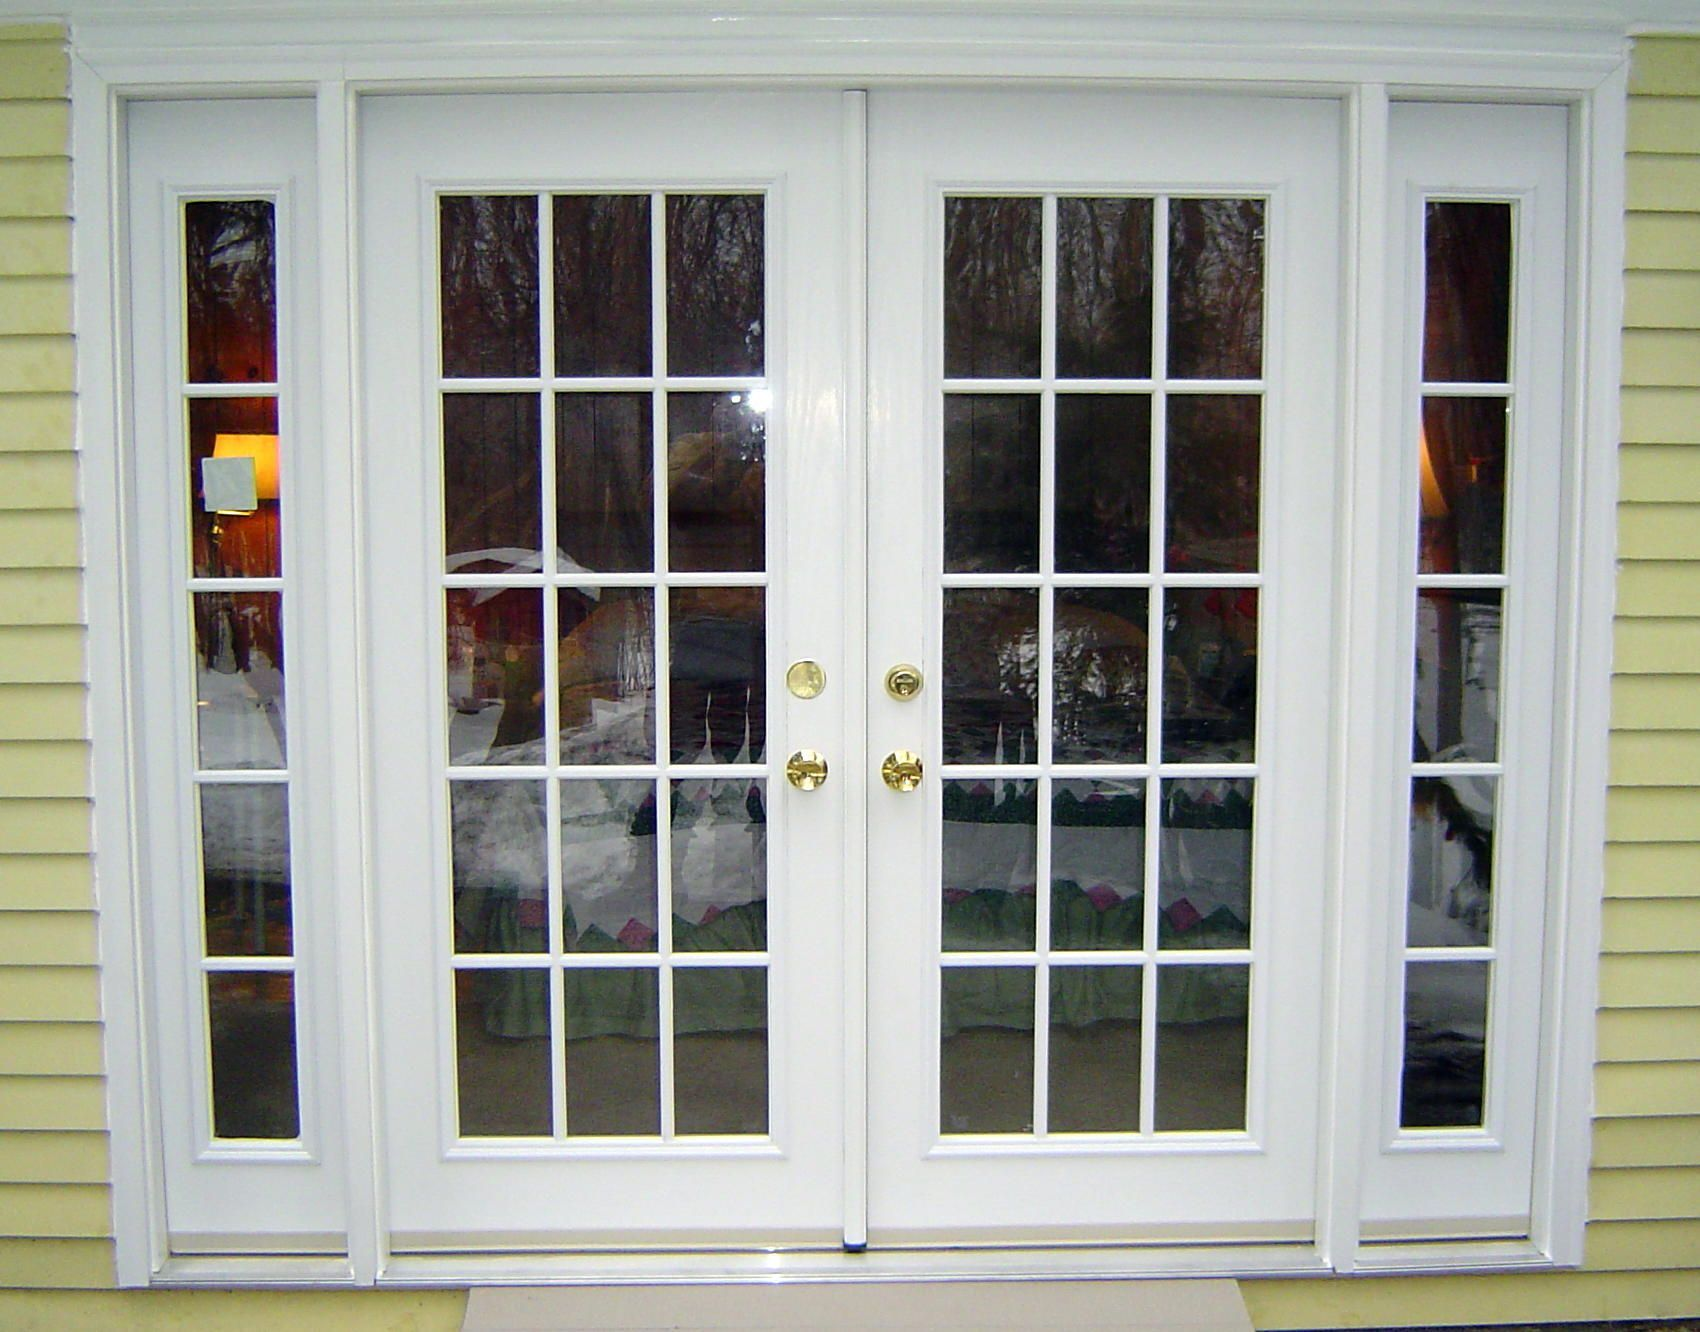 French Windows Aka French Doors Long Sash Windows Hinged To The Side The Window Extend French Doors Exterior French Doors With Sidelights French Doors Patio